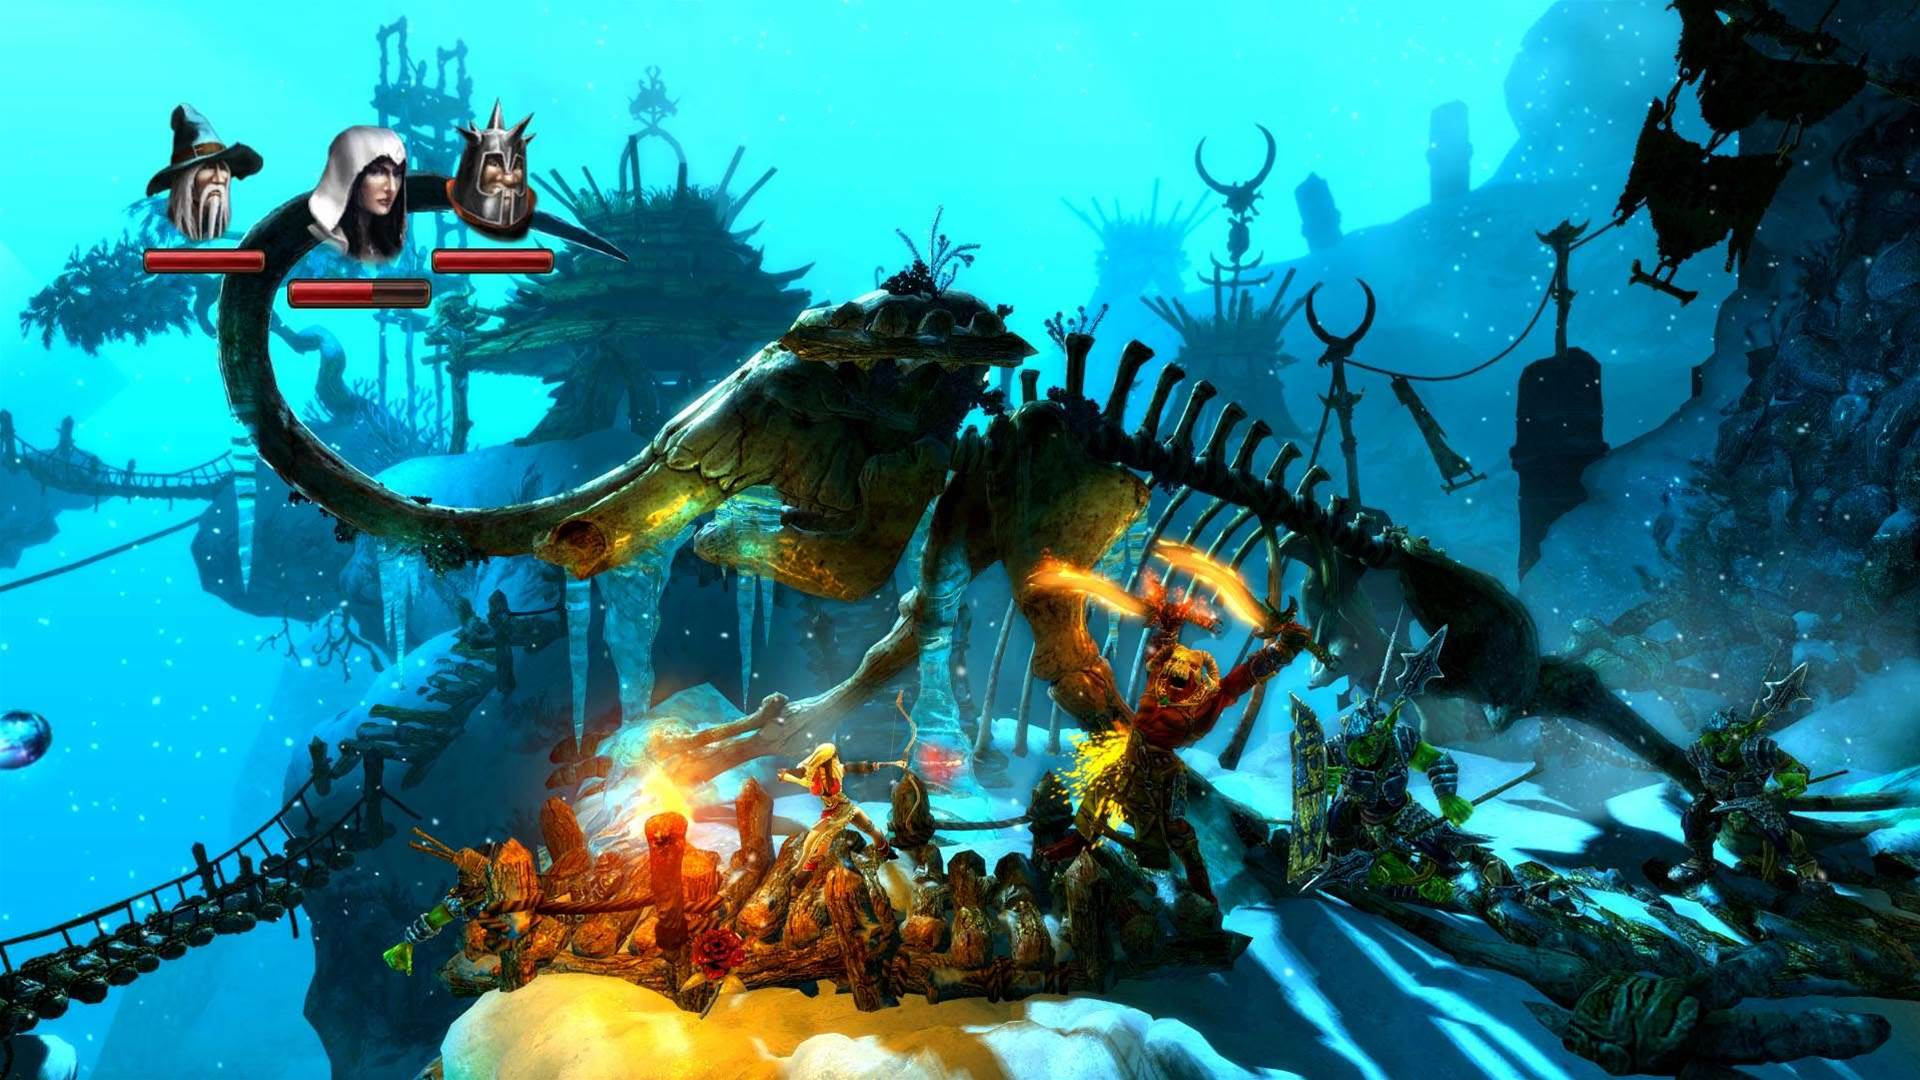 Trine 2 - hyper-colourful fun!